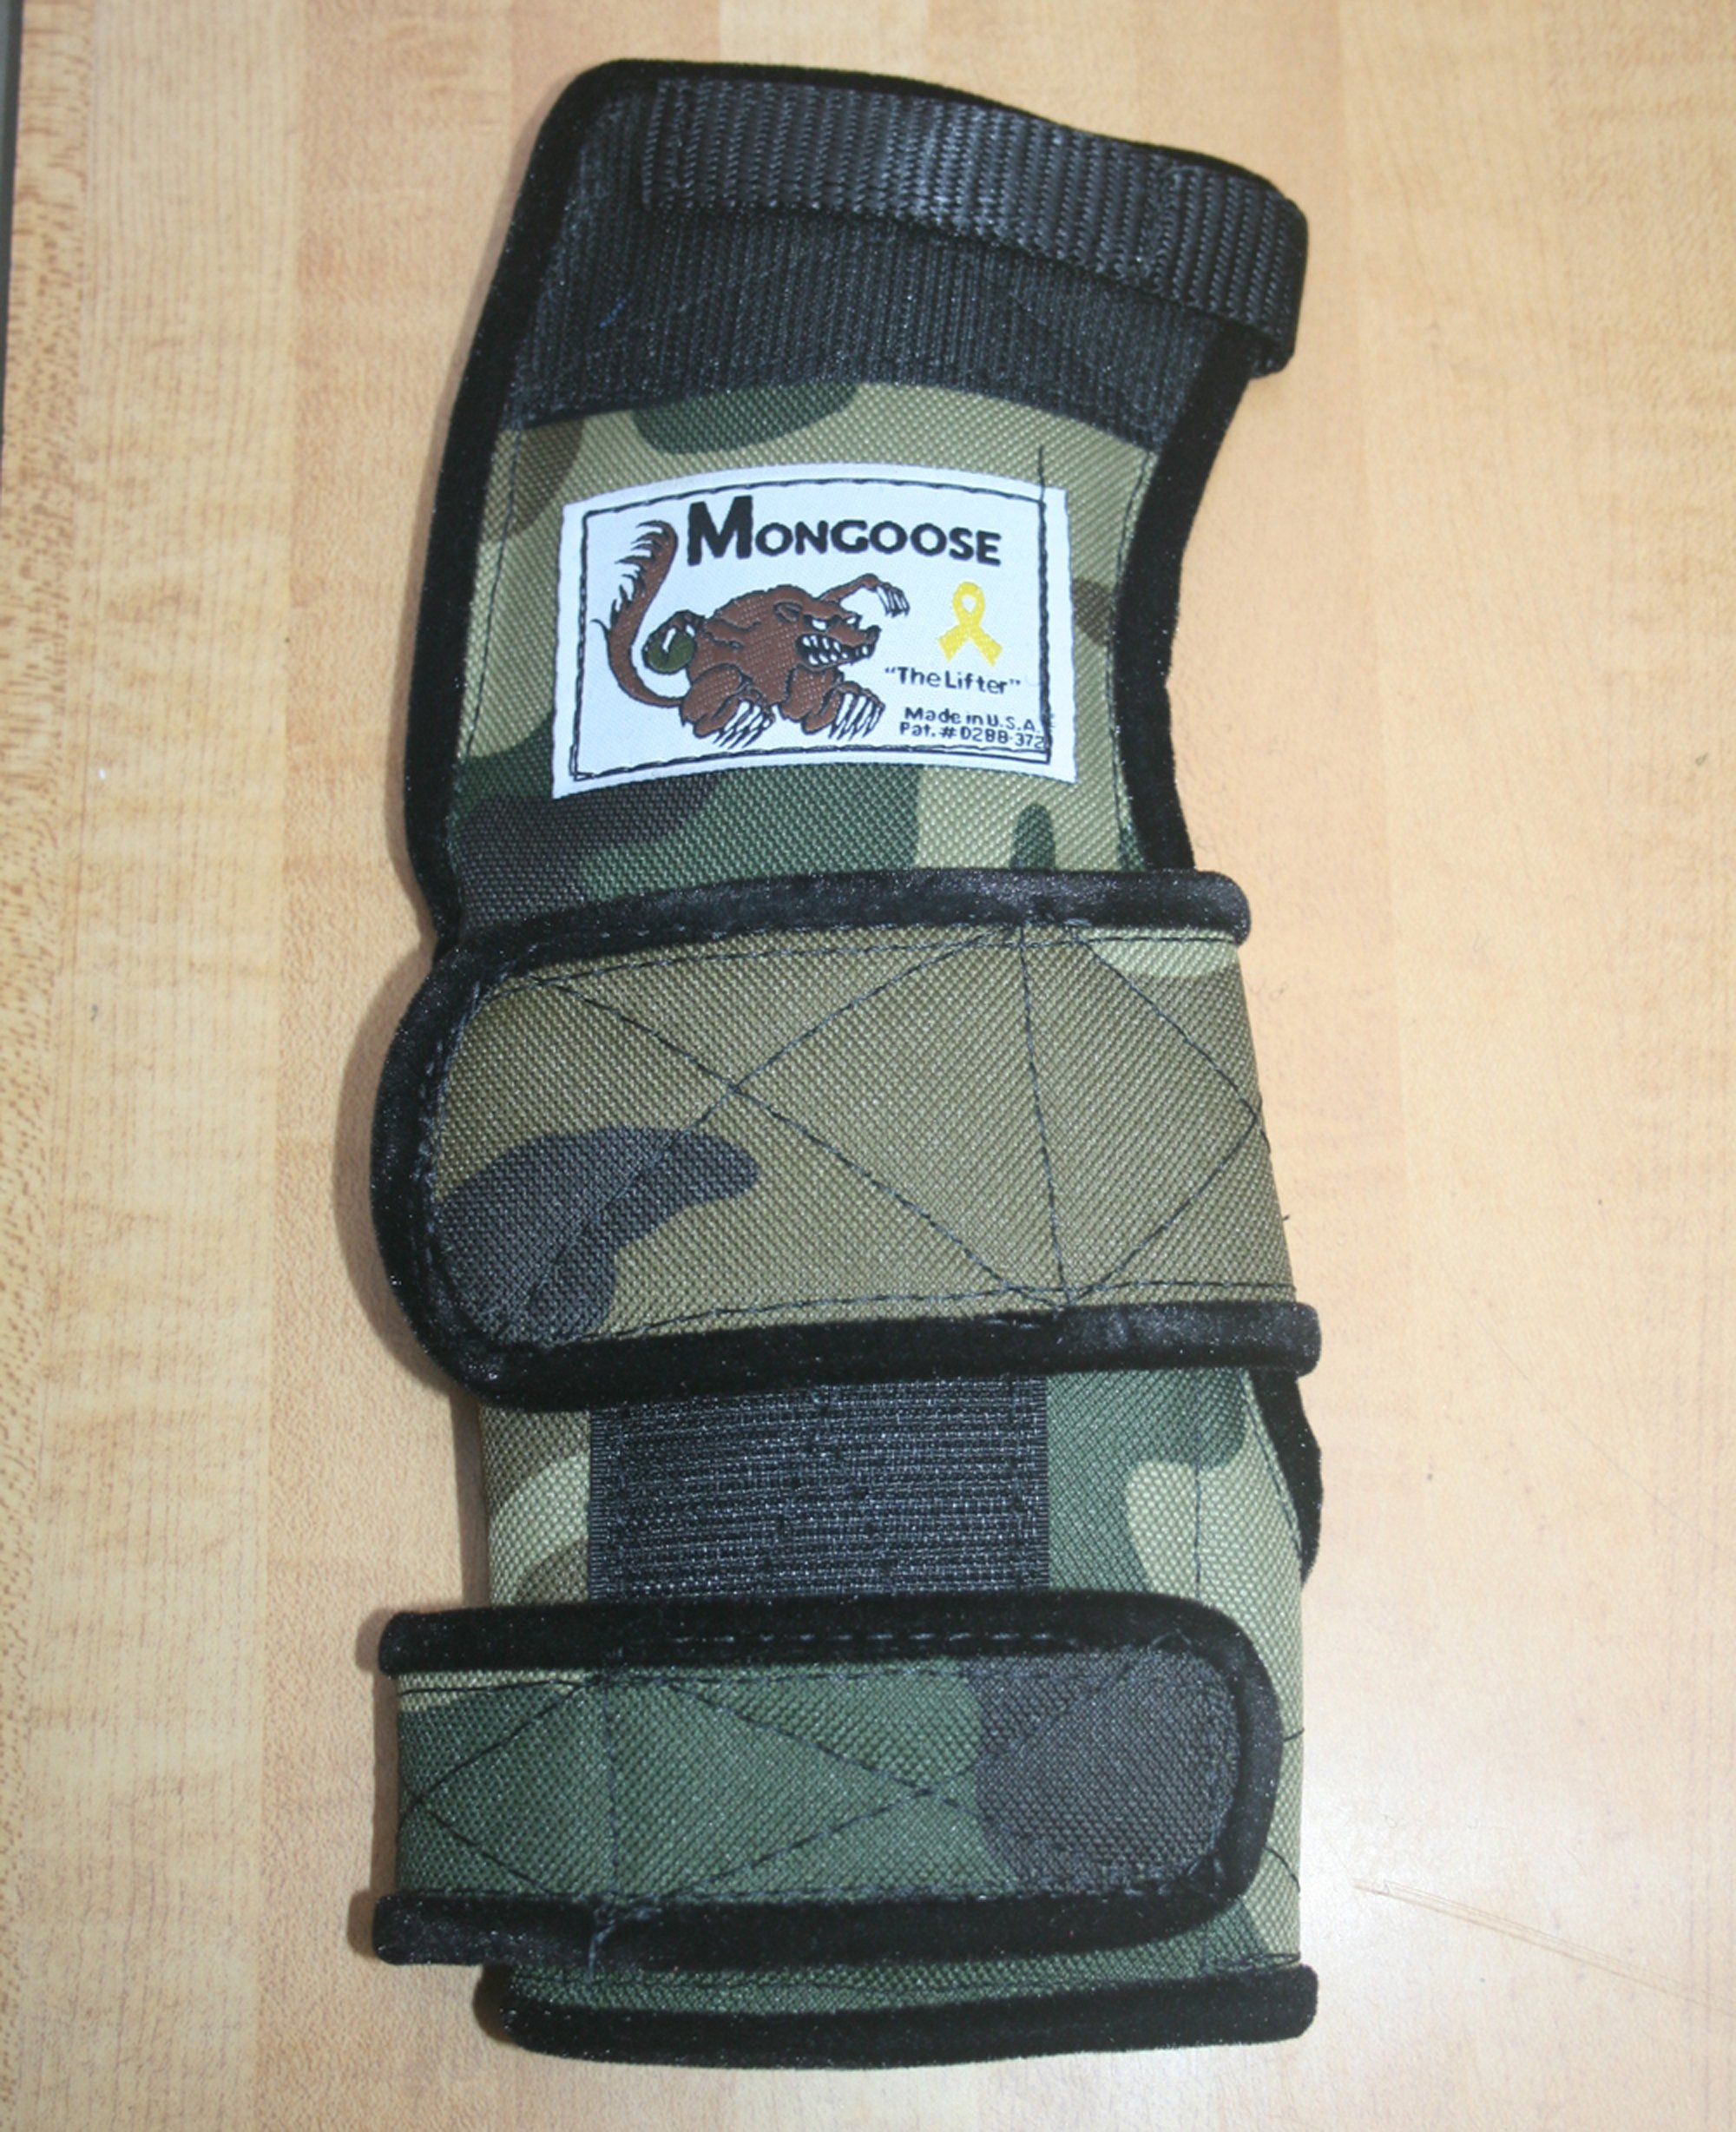 Mongoose Lifter Bowling Wrist Support Right Hand, Extra Small, Camo